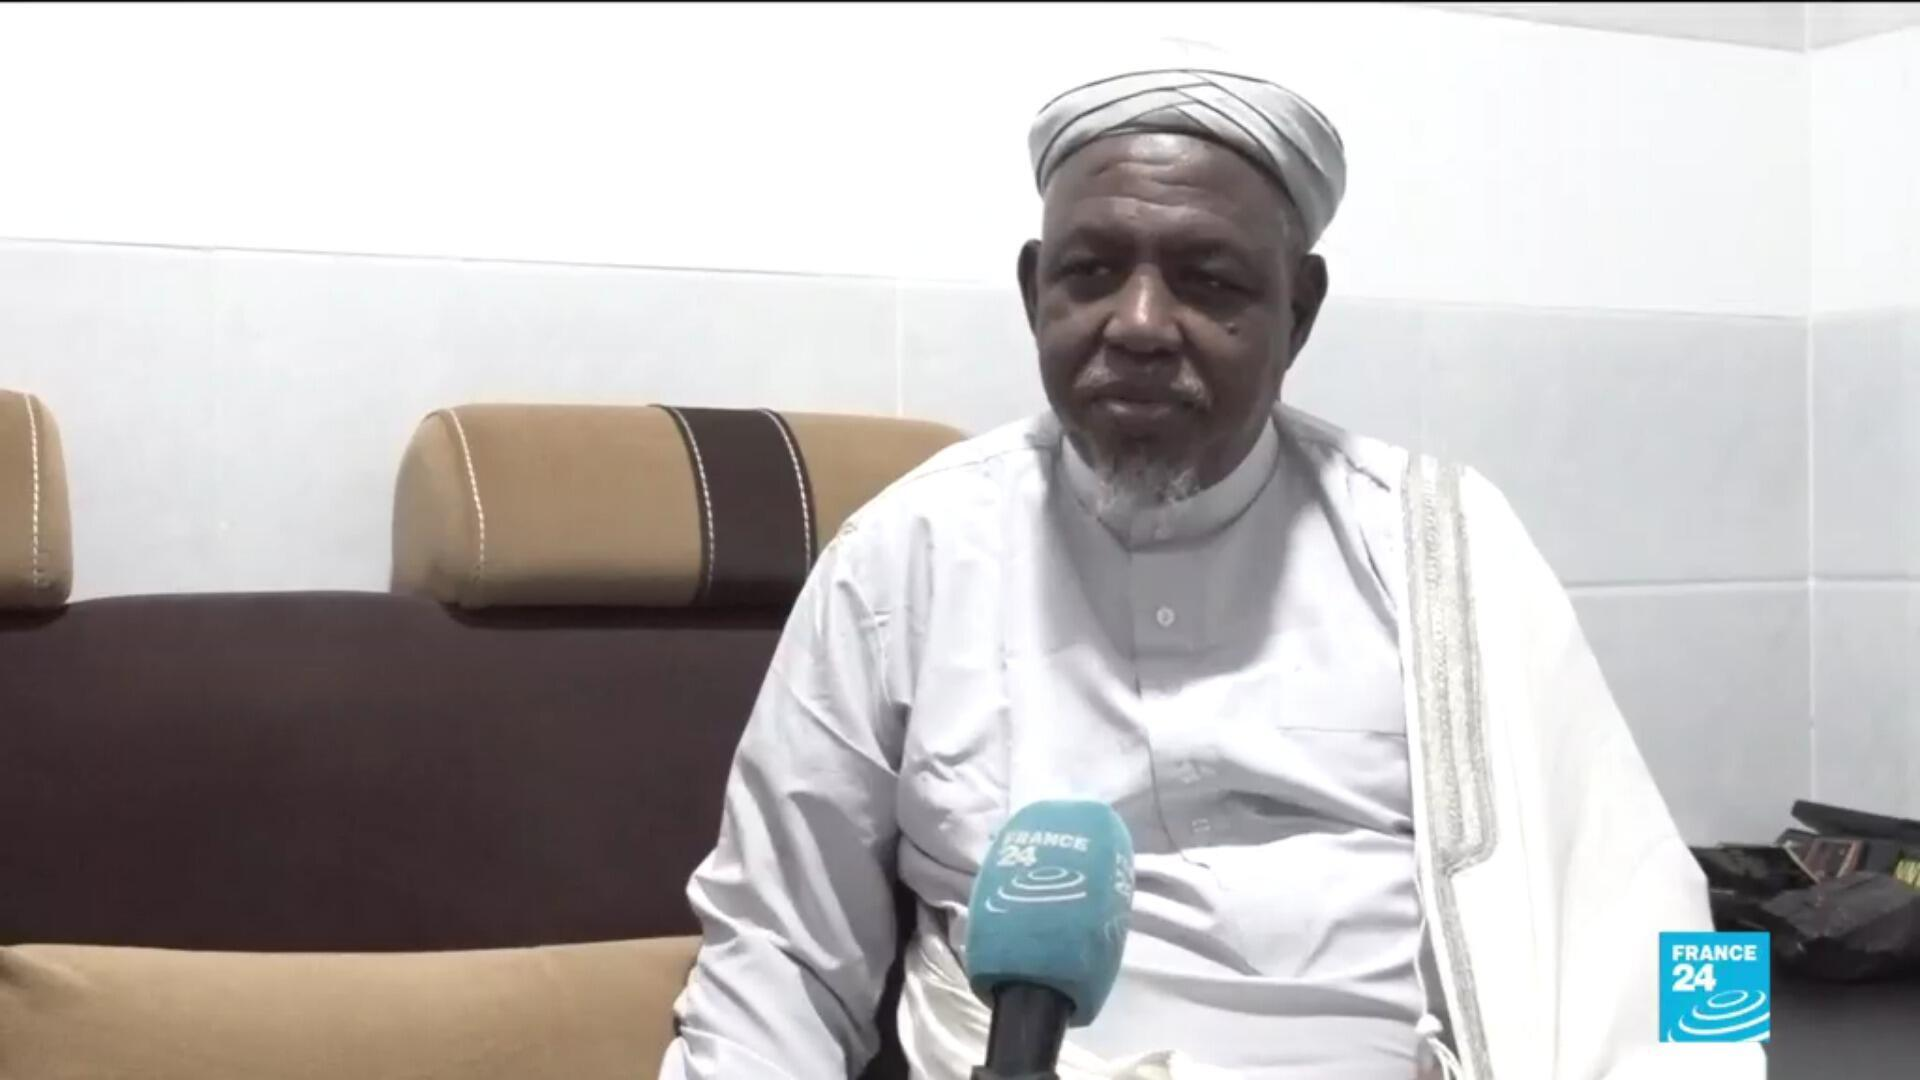 Malian imam Mahmoud Dicko has emerged as the most influential figure in the opposition to ousted president Ibrahim Boubacar Keita.